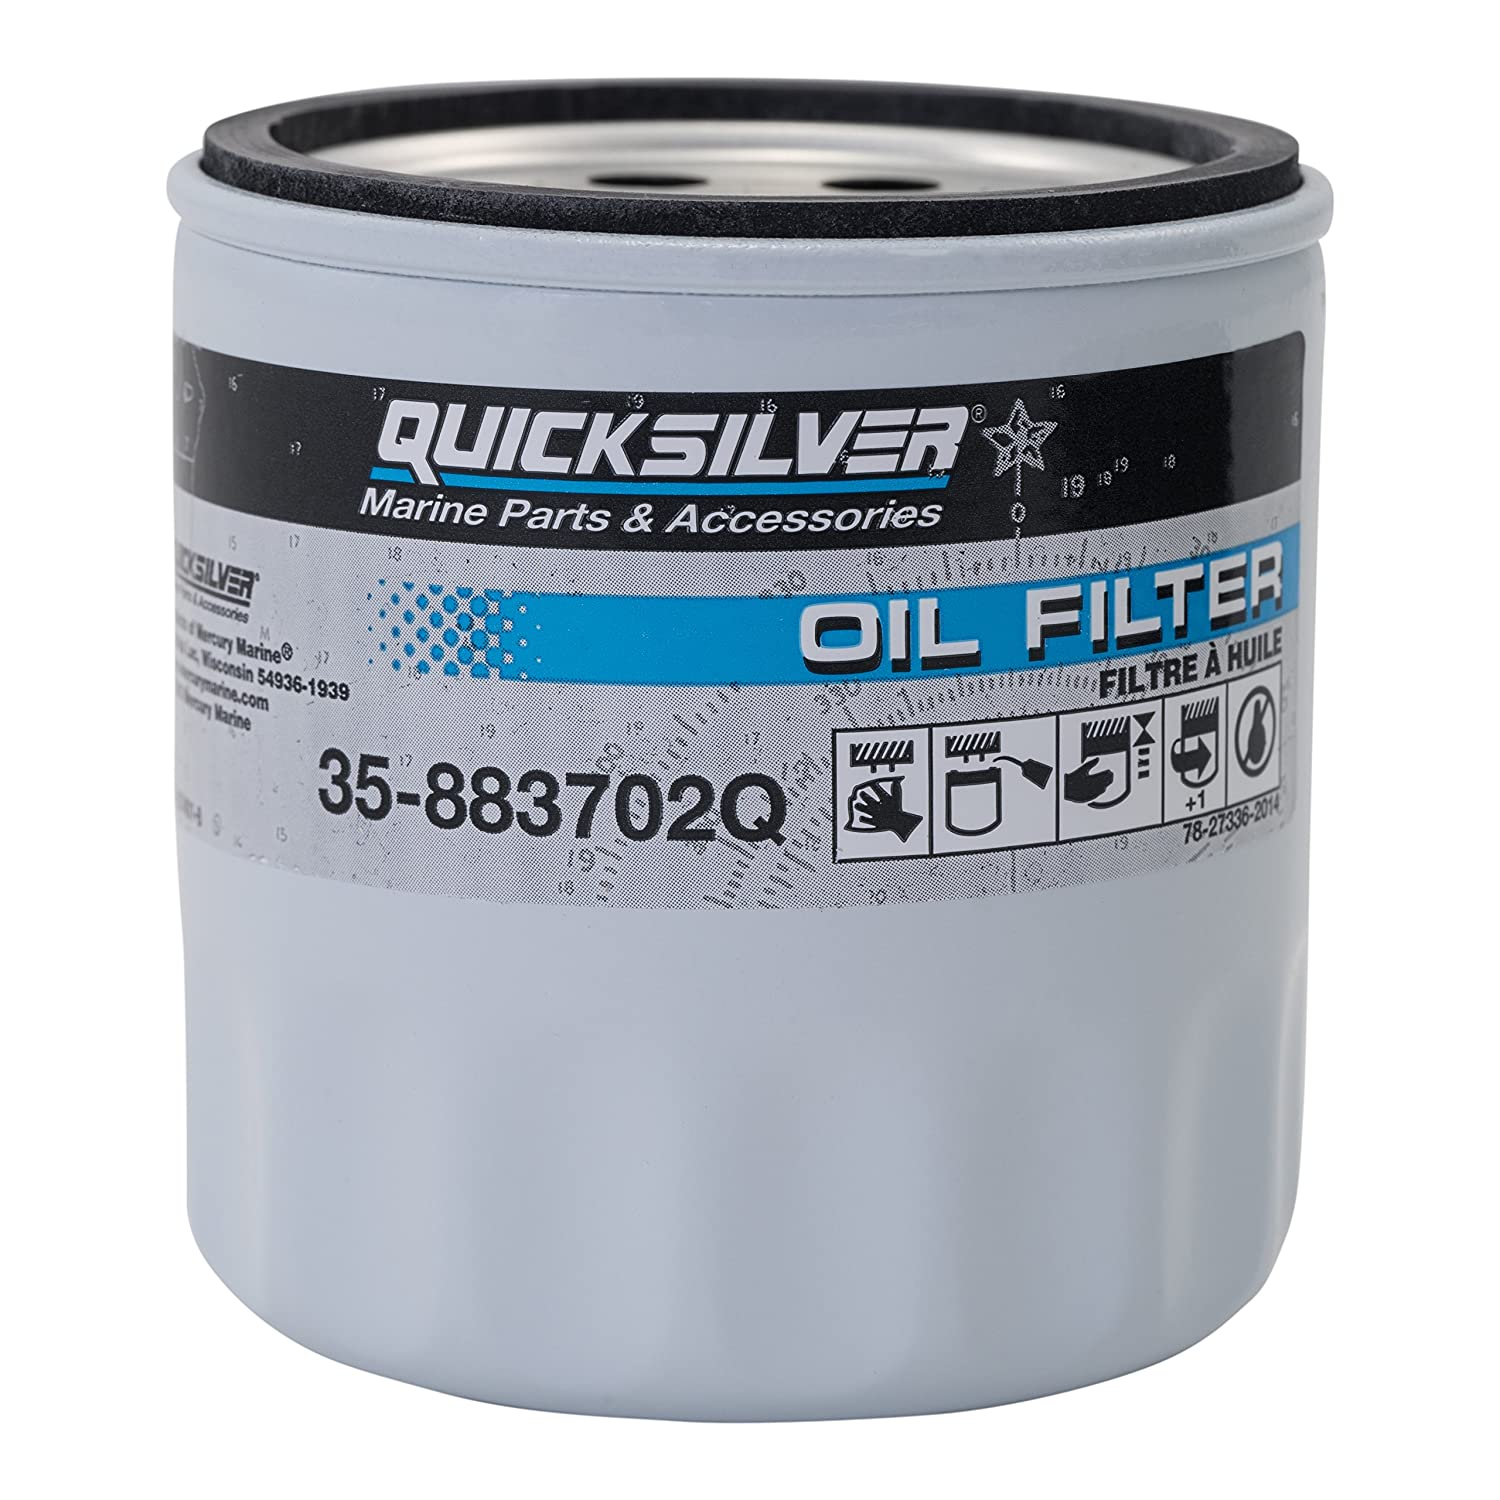 Amazon.com: Quicksilver 883702Q Engine Block Mount Oil Filter - V-6  MerCruiser Stern Drive Engines: Sports & Outdoors